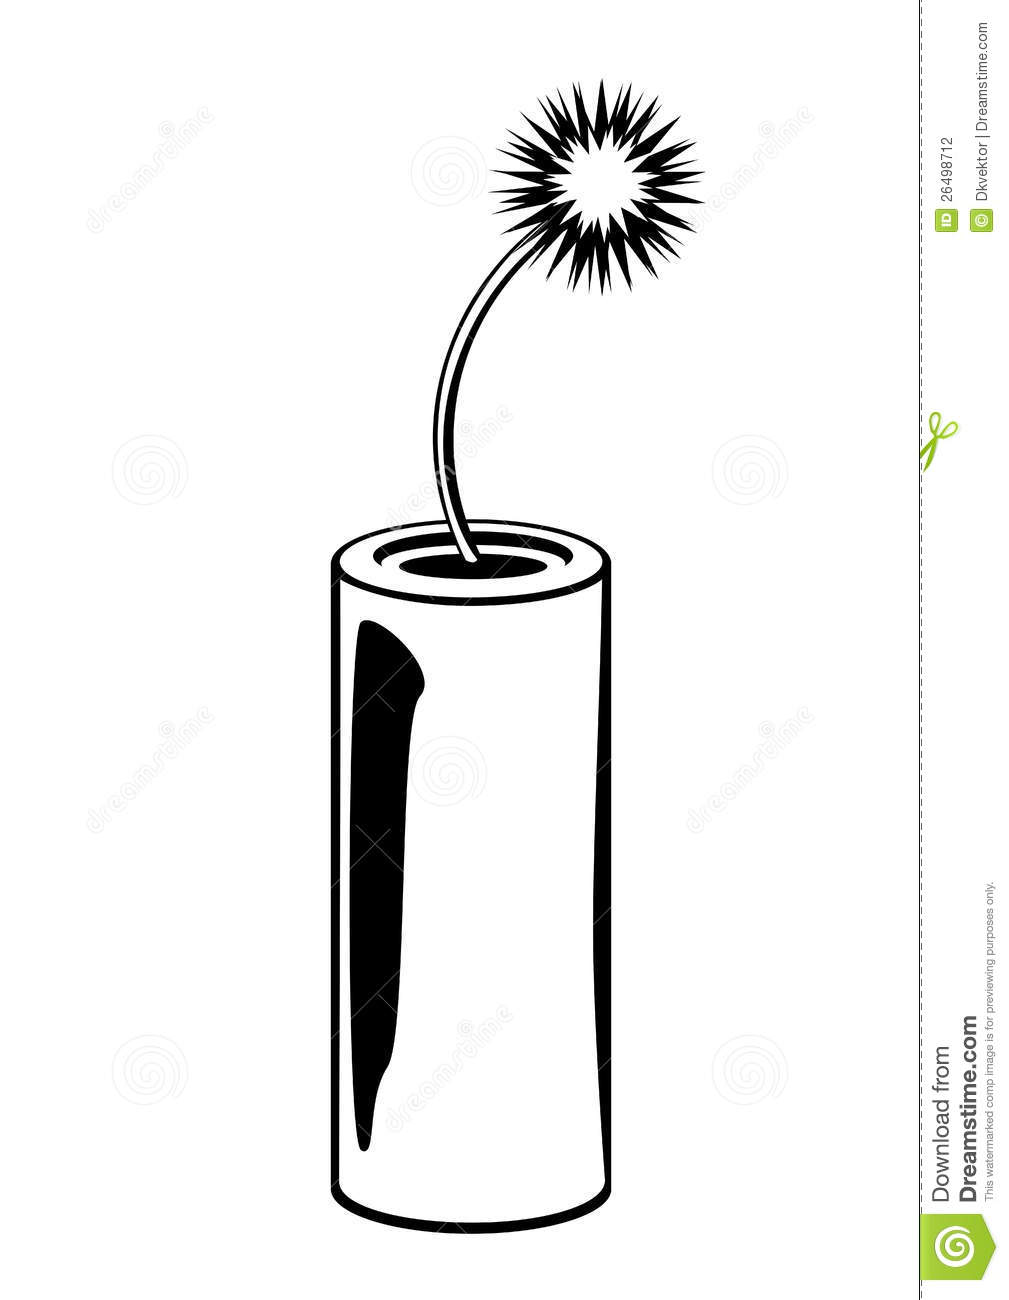 Dynamite Black And White Stock Photography Image 26498712